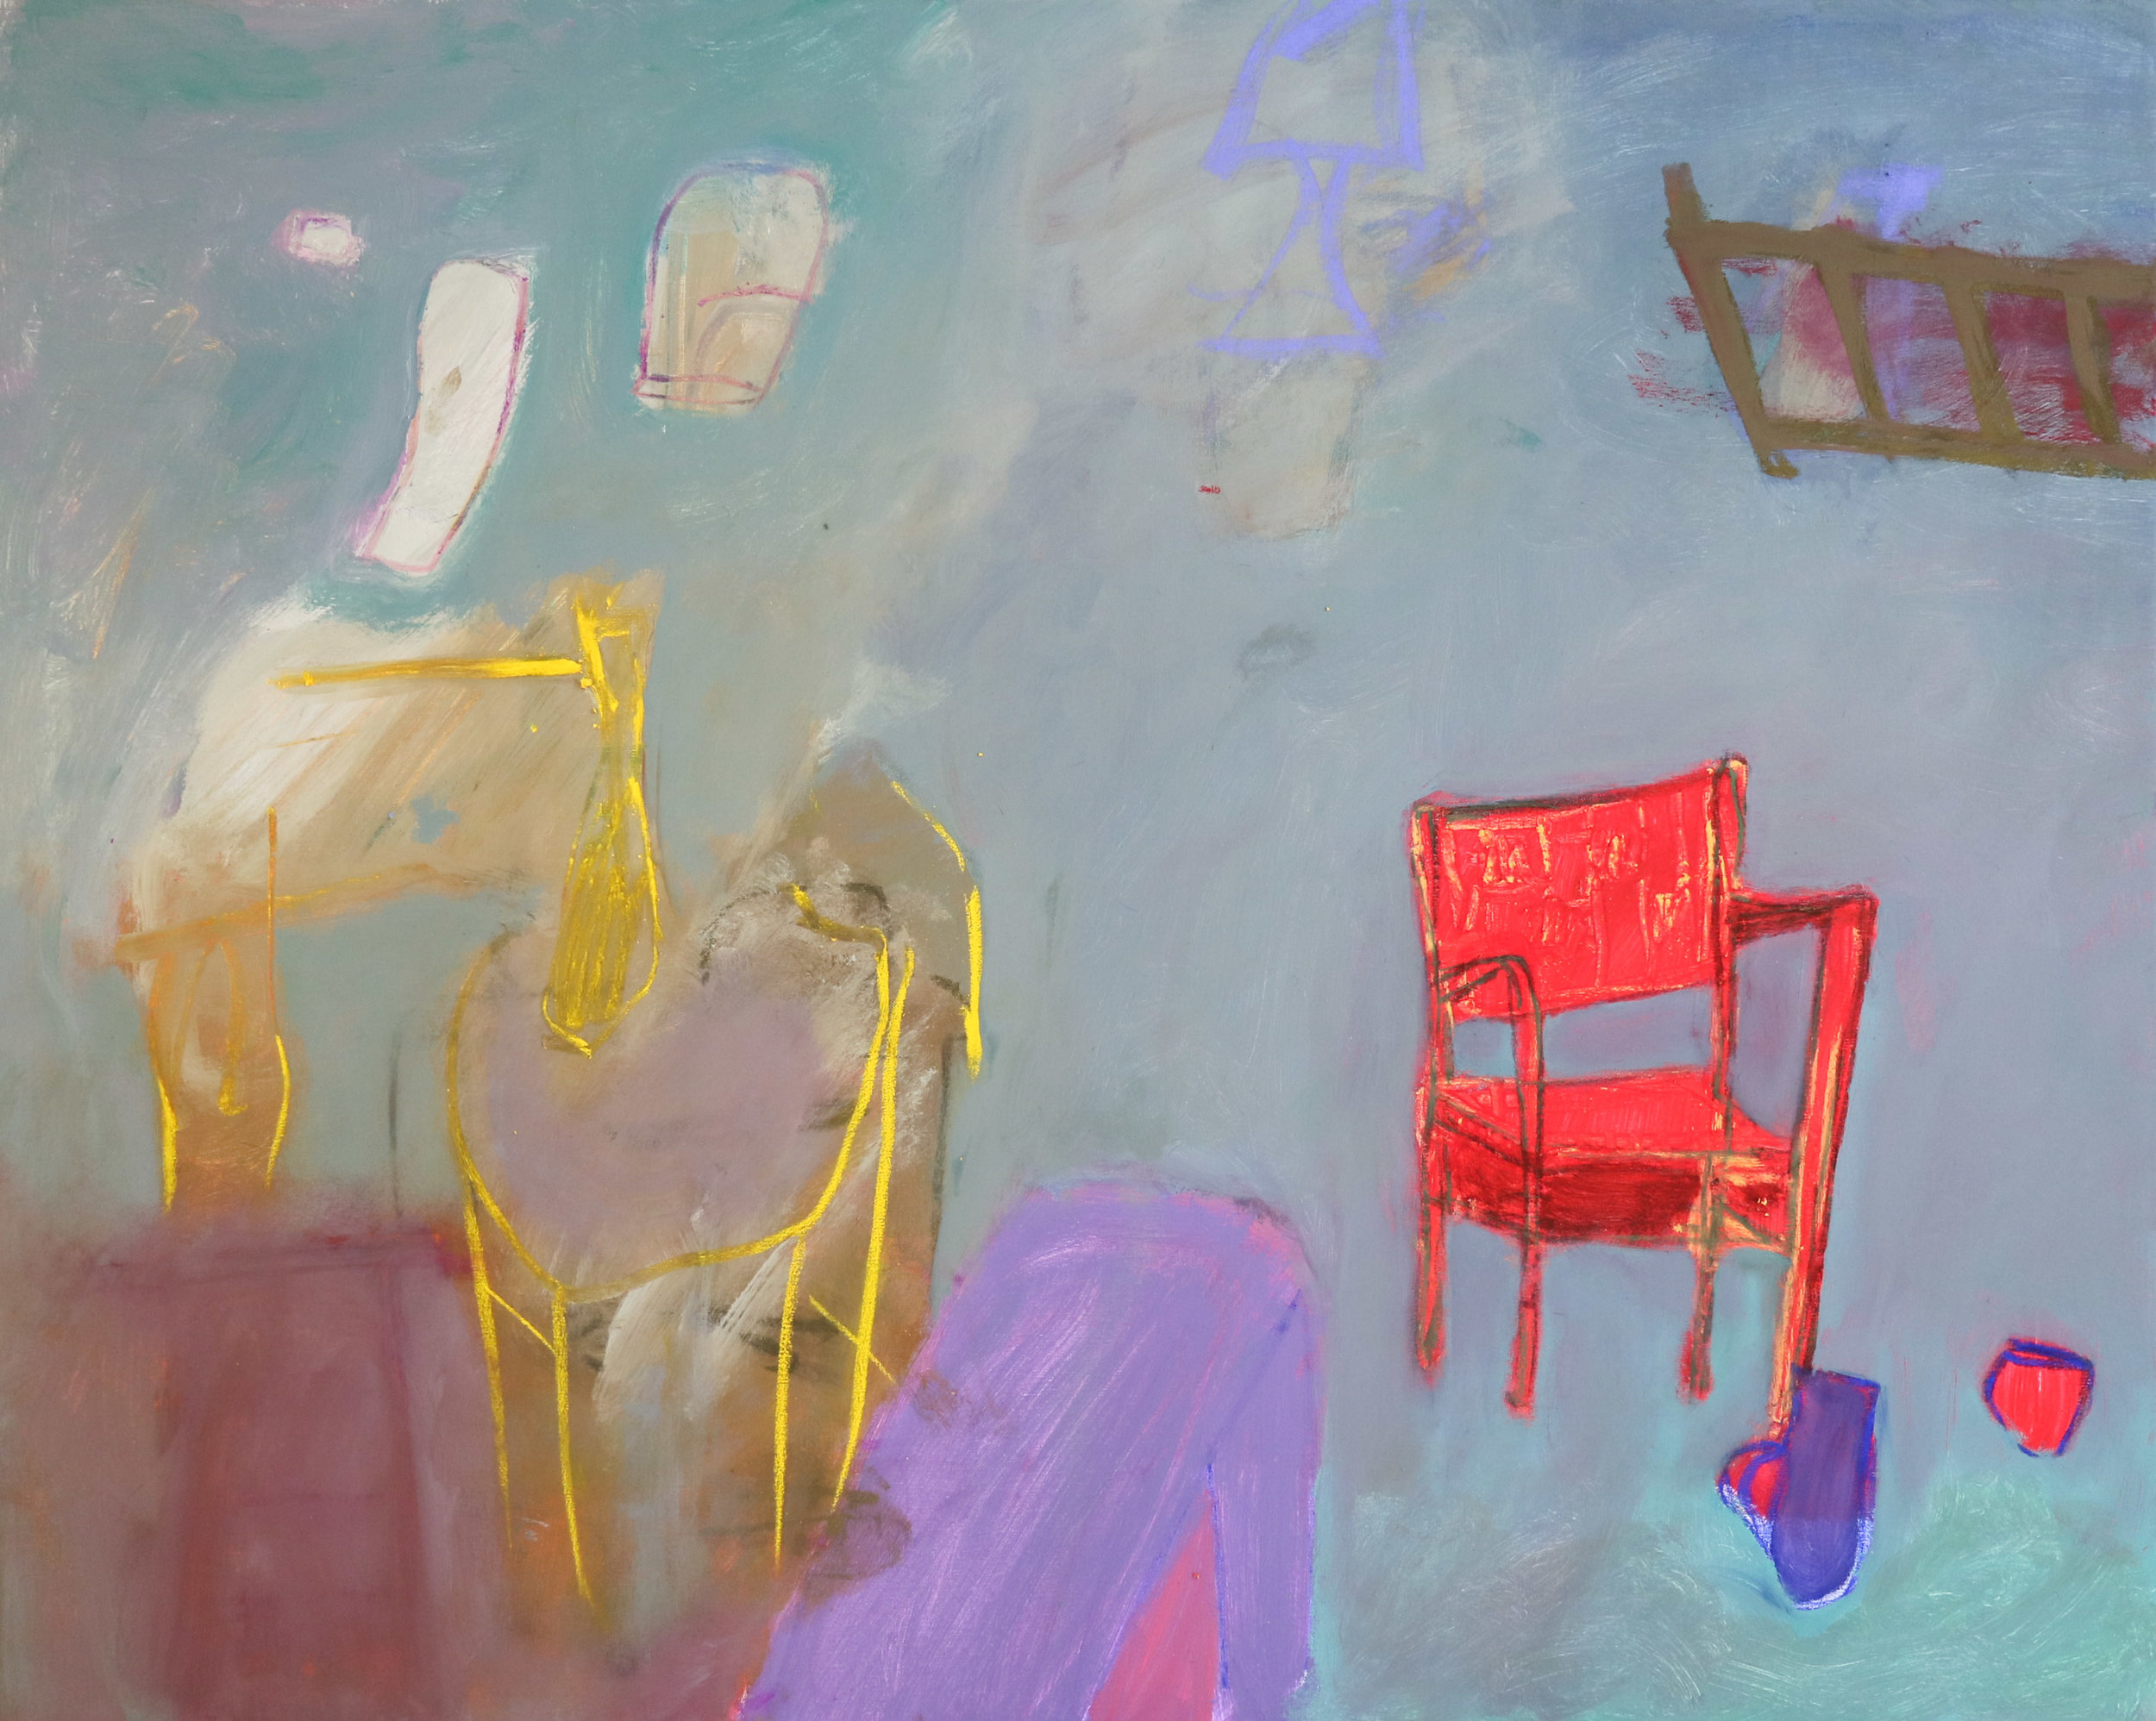 Red Chair in Mint Room II, 2018